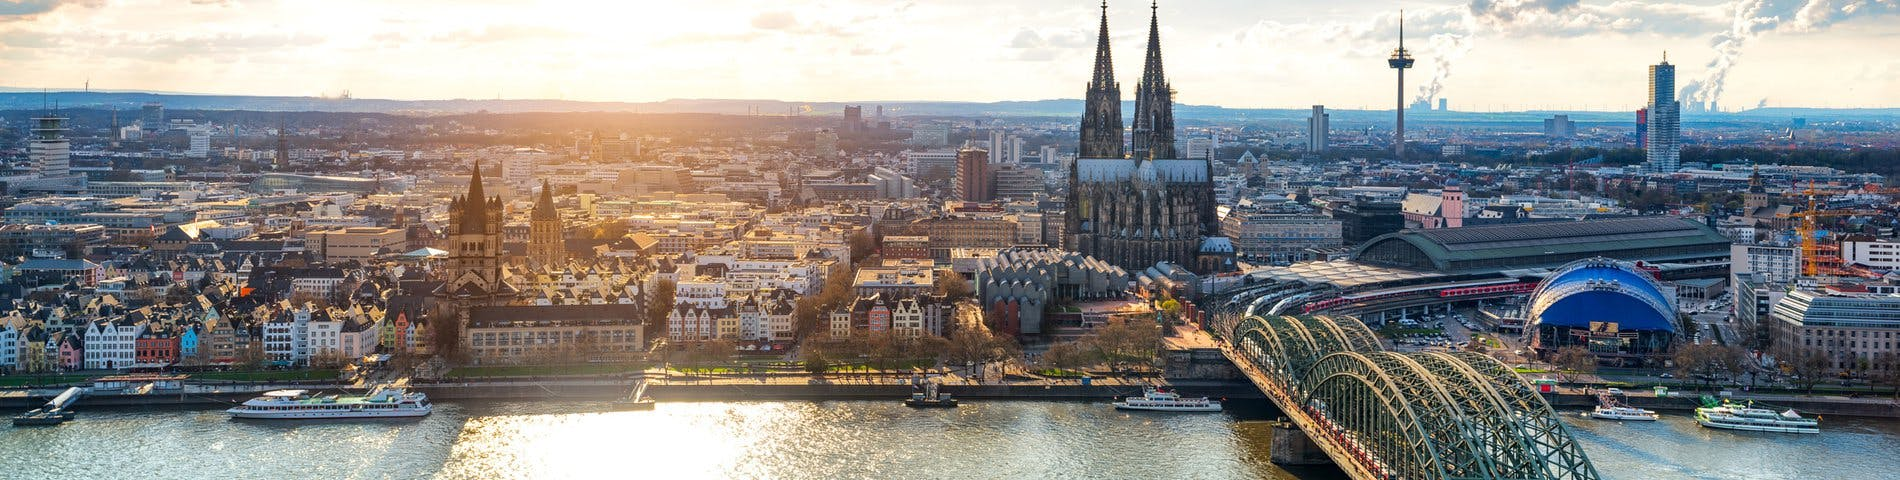 Cologne Germany 2 - dmexco Conference